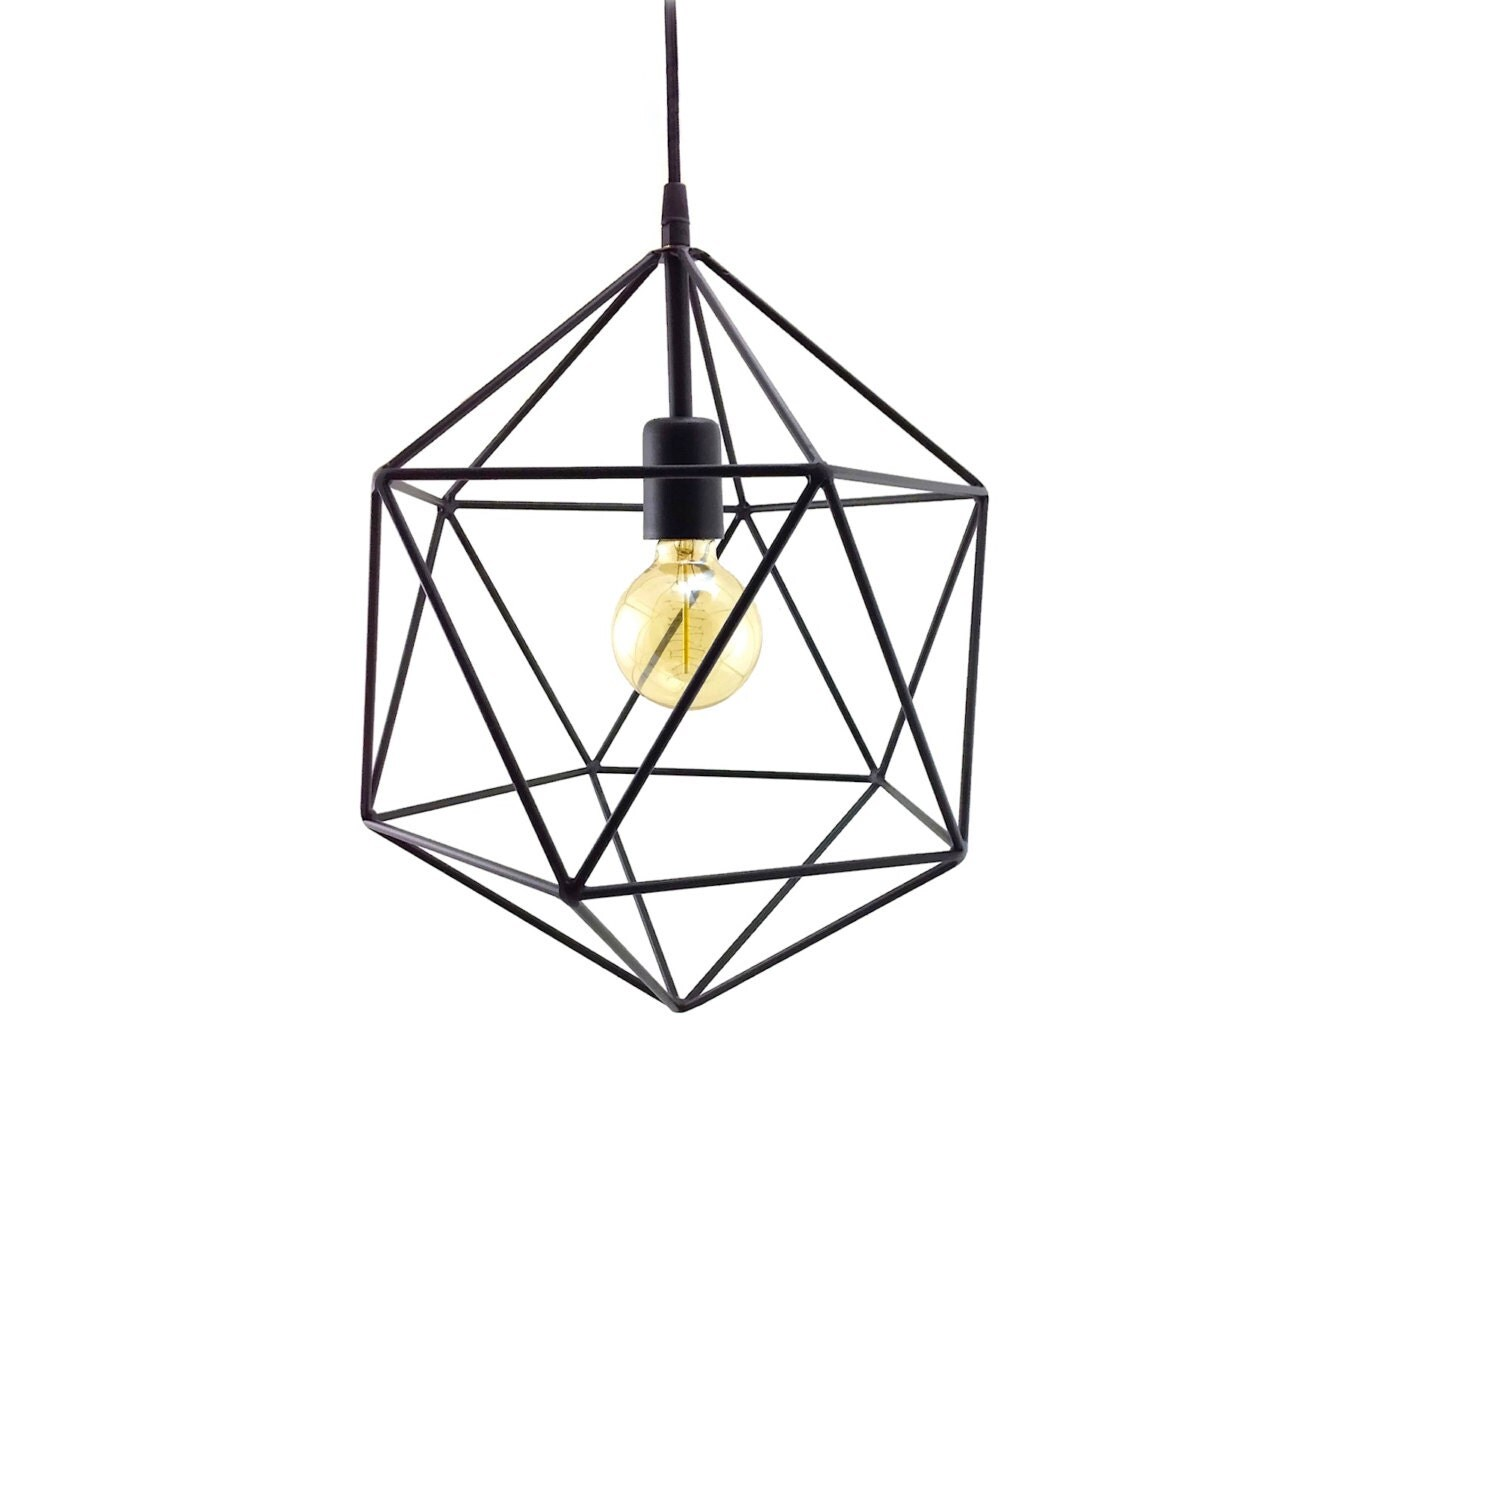 Geometric Pendant Light Handmade Hanging Light By